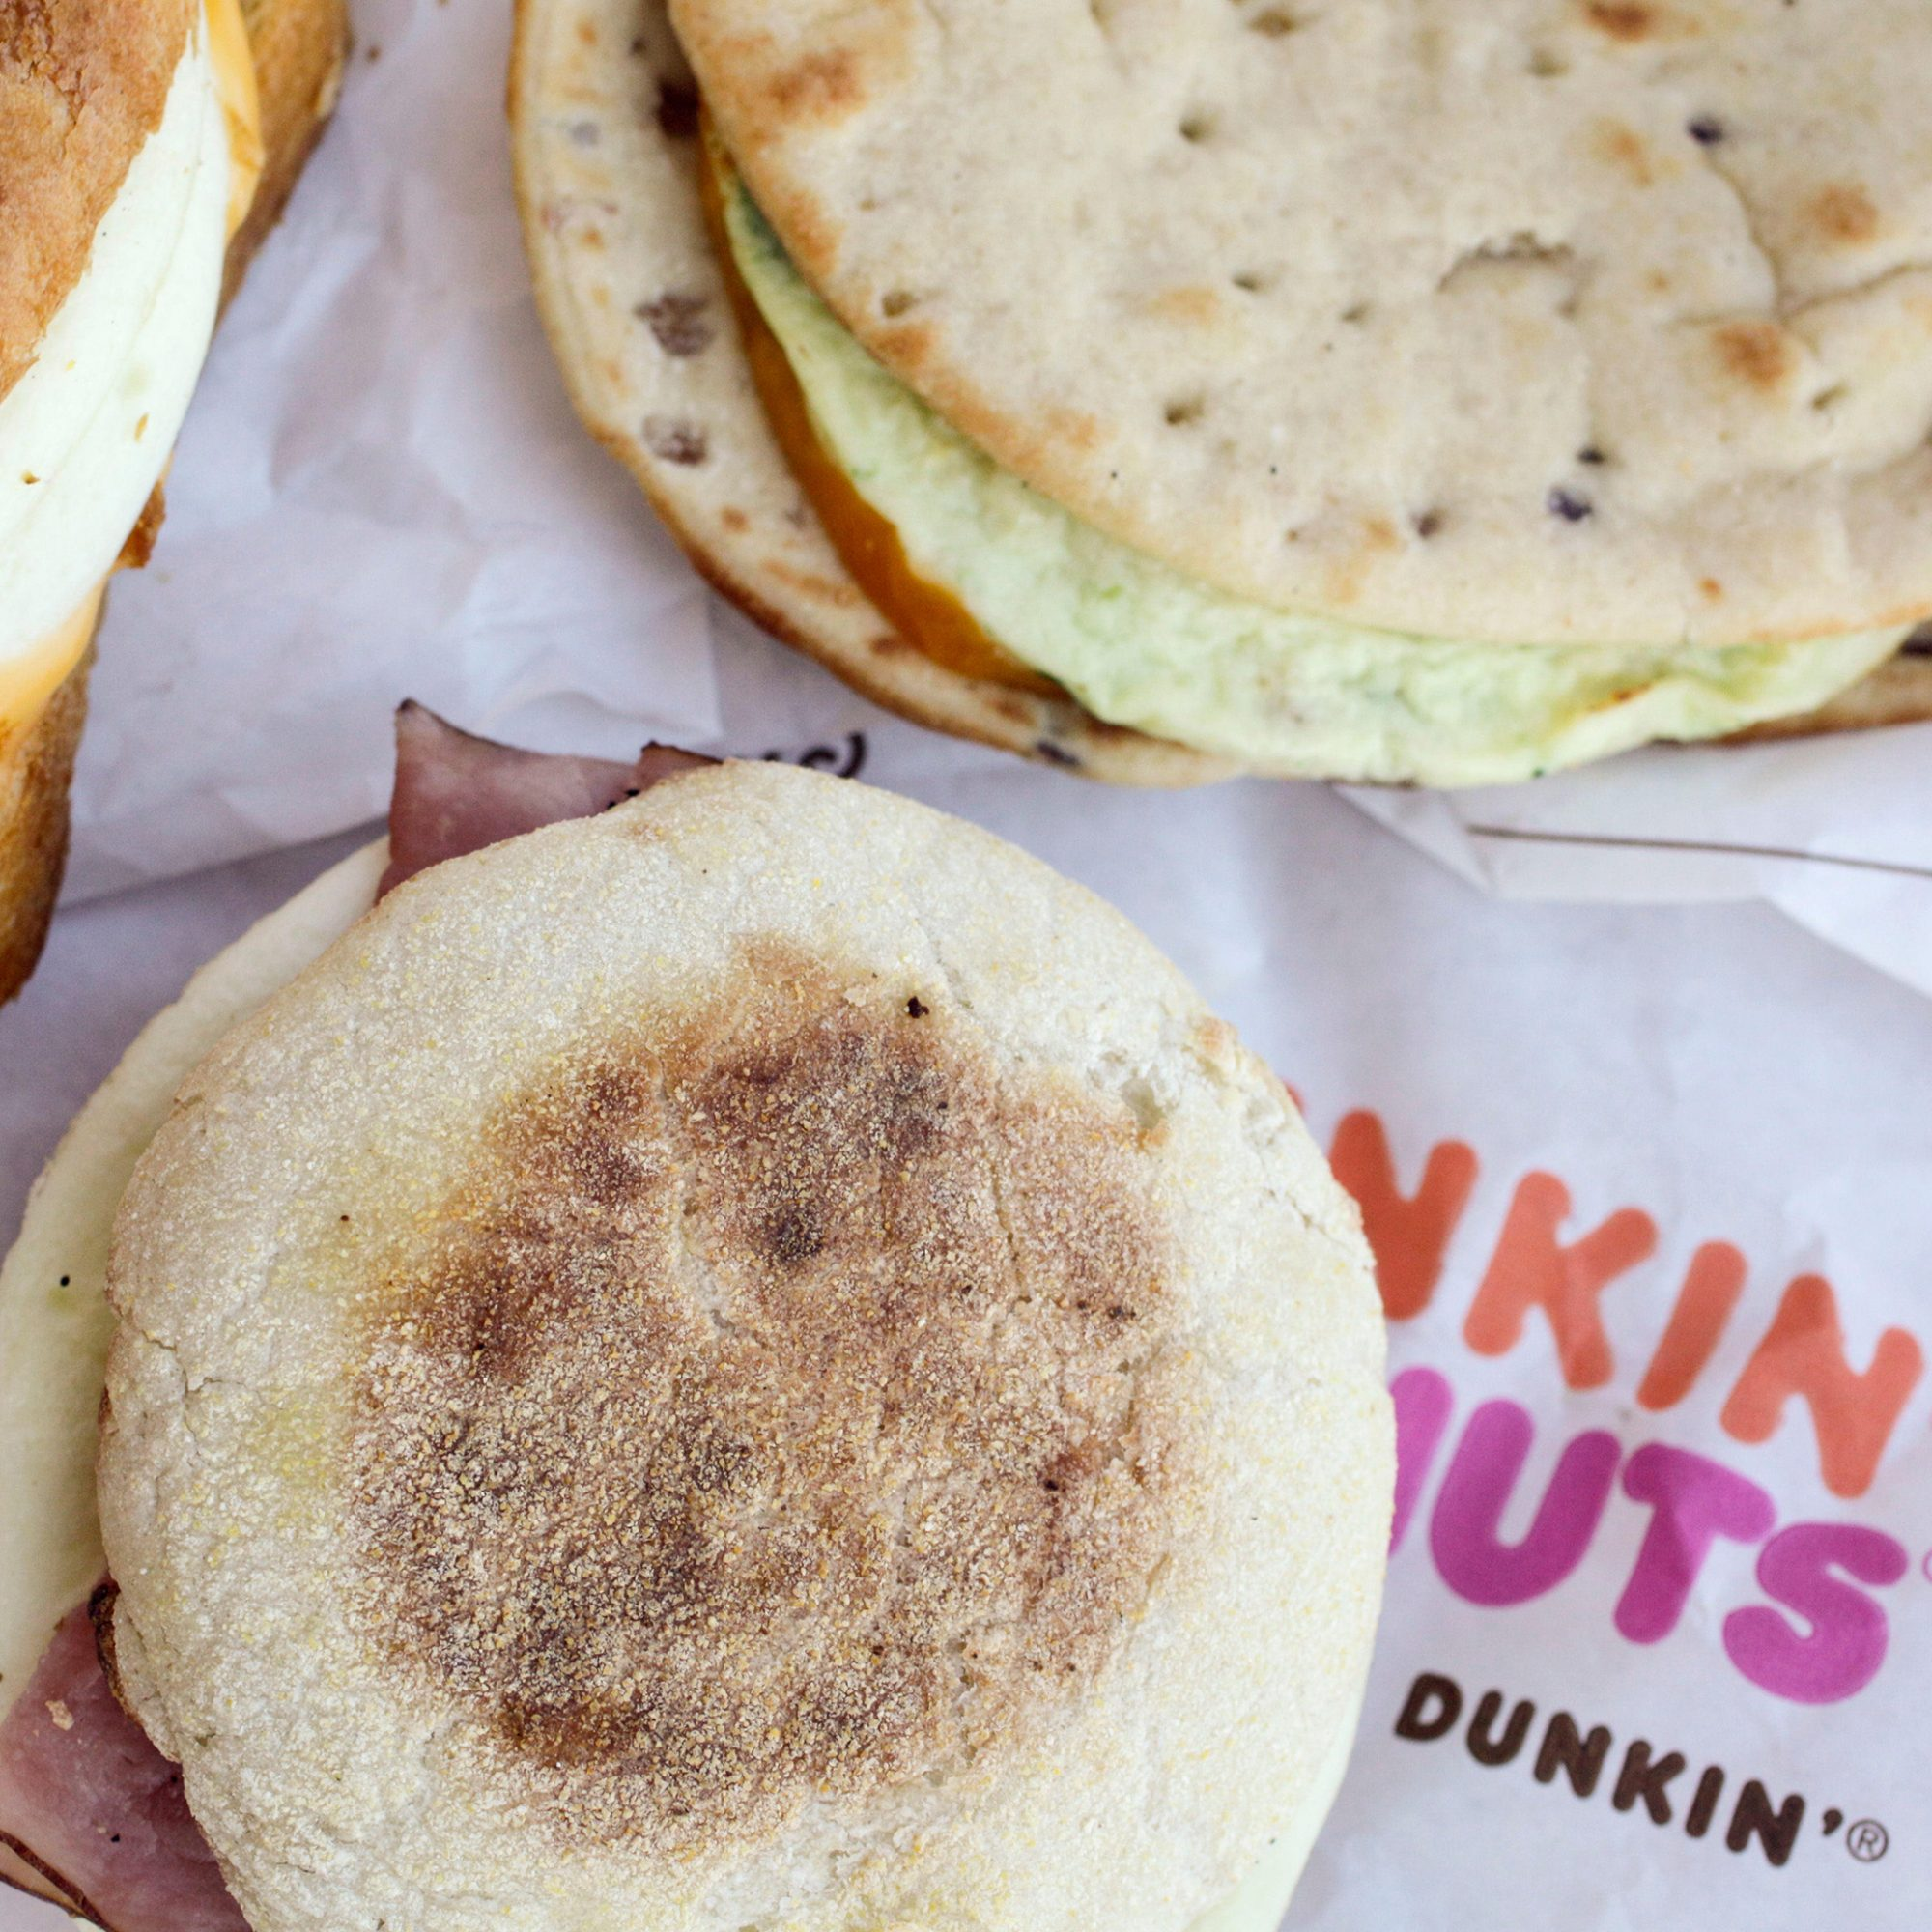 Dunkin' Donuts Is the Only Company Brave Enough to Stuff Sausages with Bacon